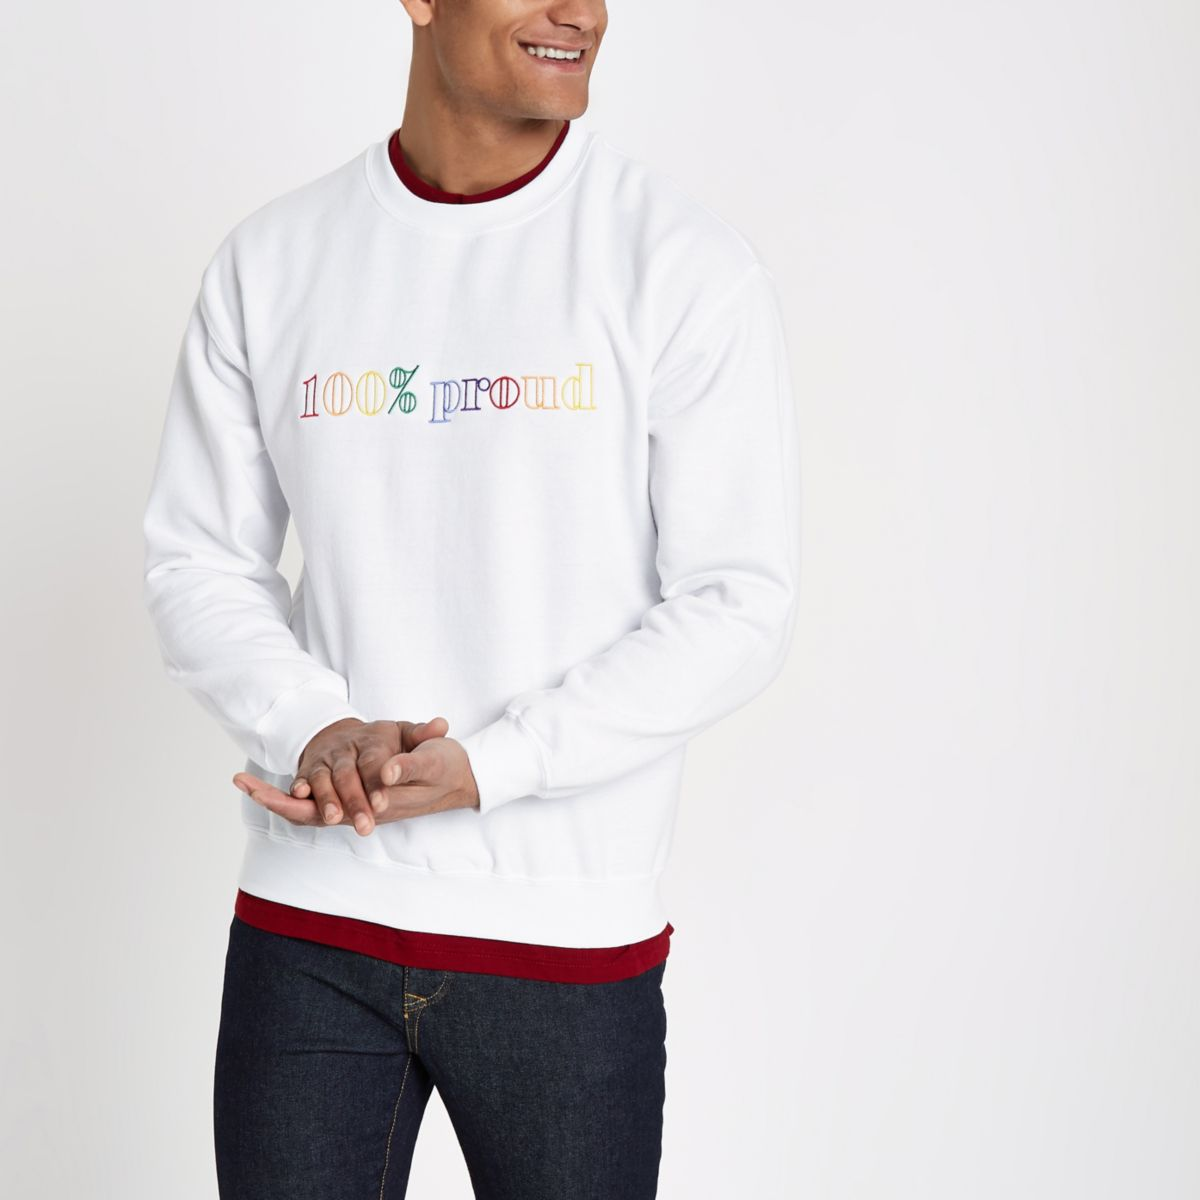 White '100% proud' sweatshirt